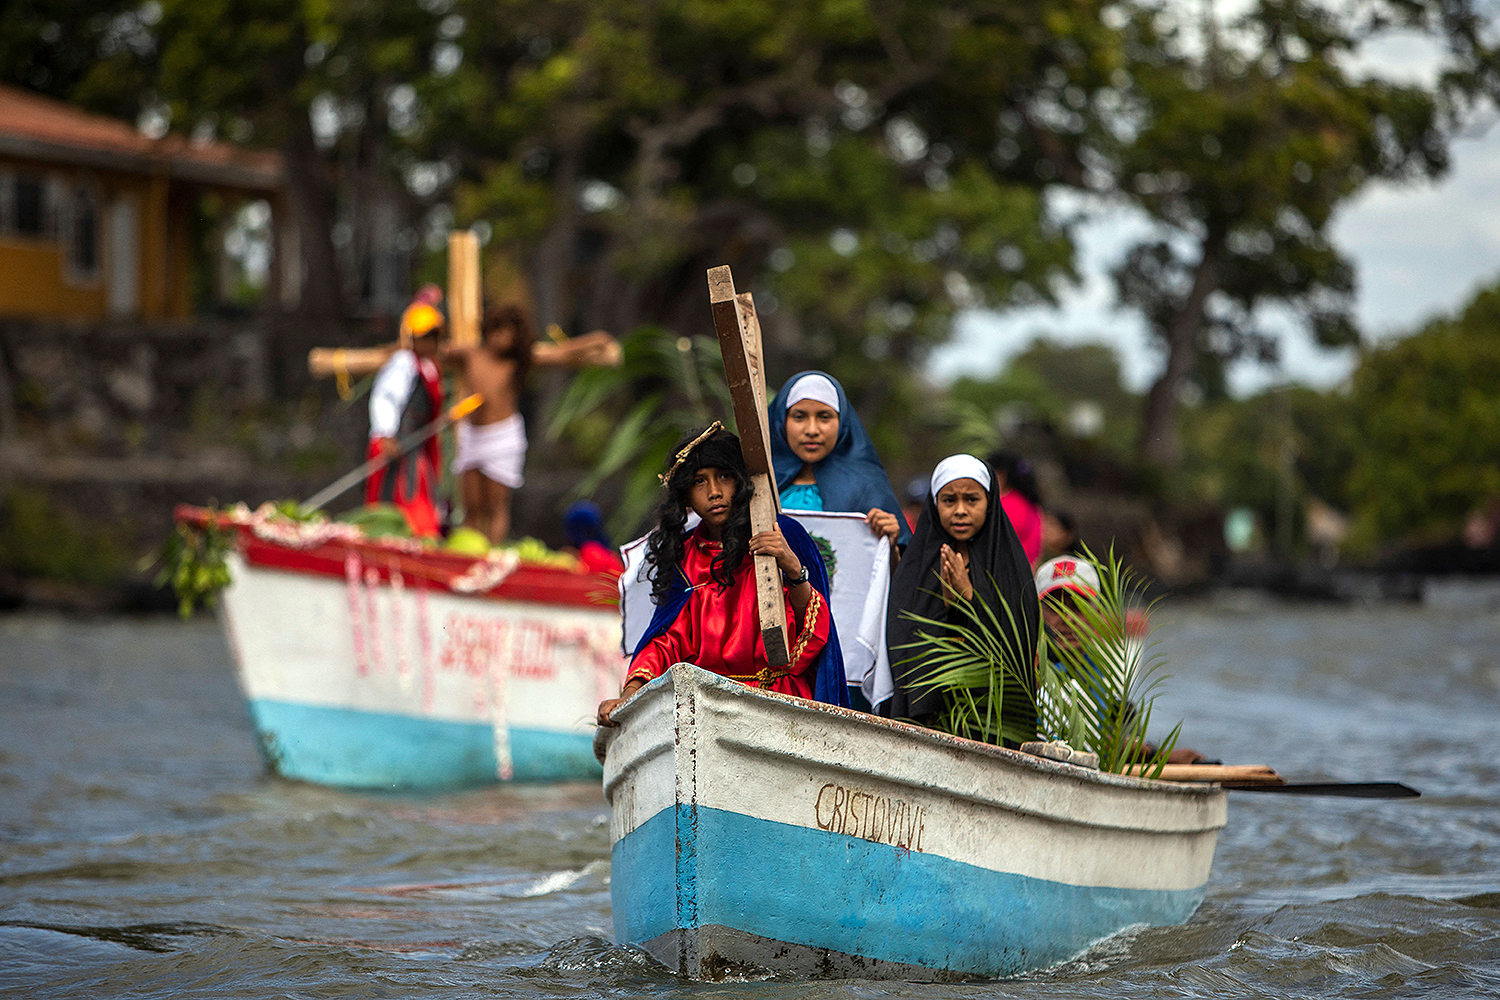 Amid Holy Week celebrations, Catholics participate in an aquatic reenactment of the Way of the Cross on Lake Cocibolca in Granada, Nicaragua, on March 29. INTI OCON/AFP via Getty Images